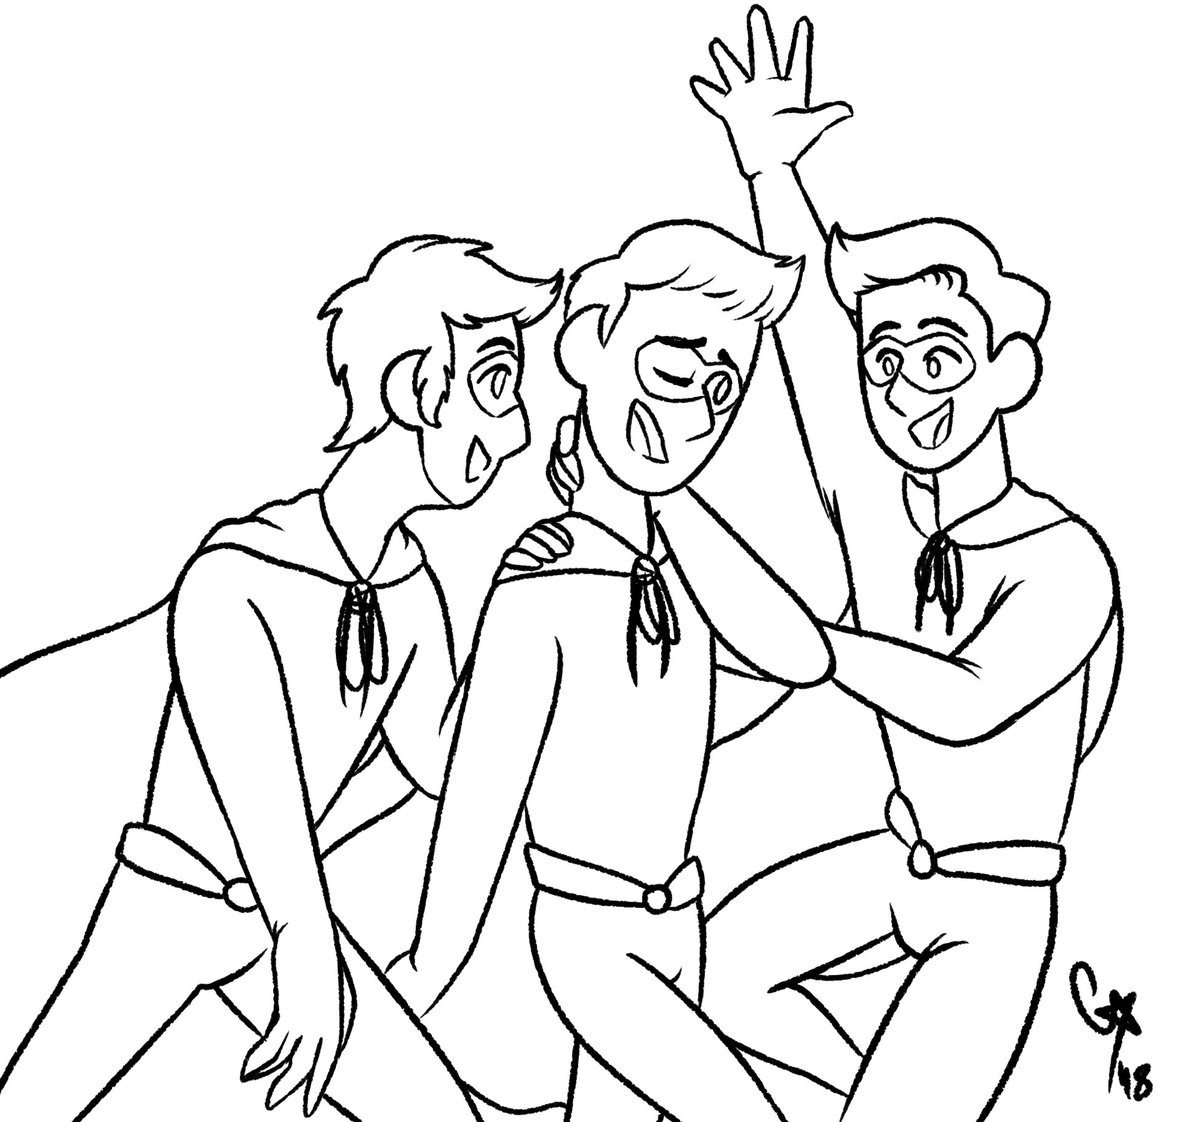 I forgot to upload yesterday so heres two! Alternate Universe day and Favorite team! Its my Dusk Boys AU and the Stream Team! #ahfanart #treycoweek